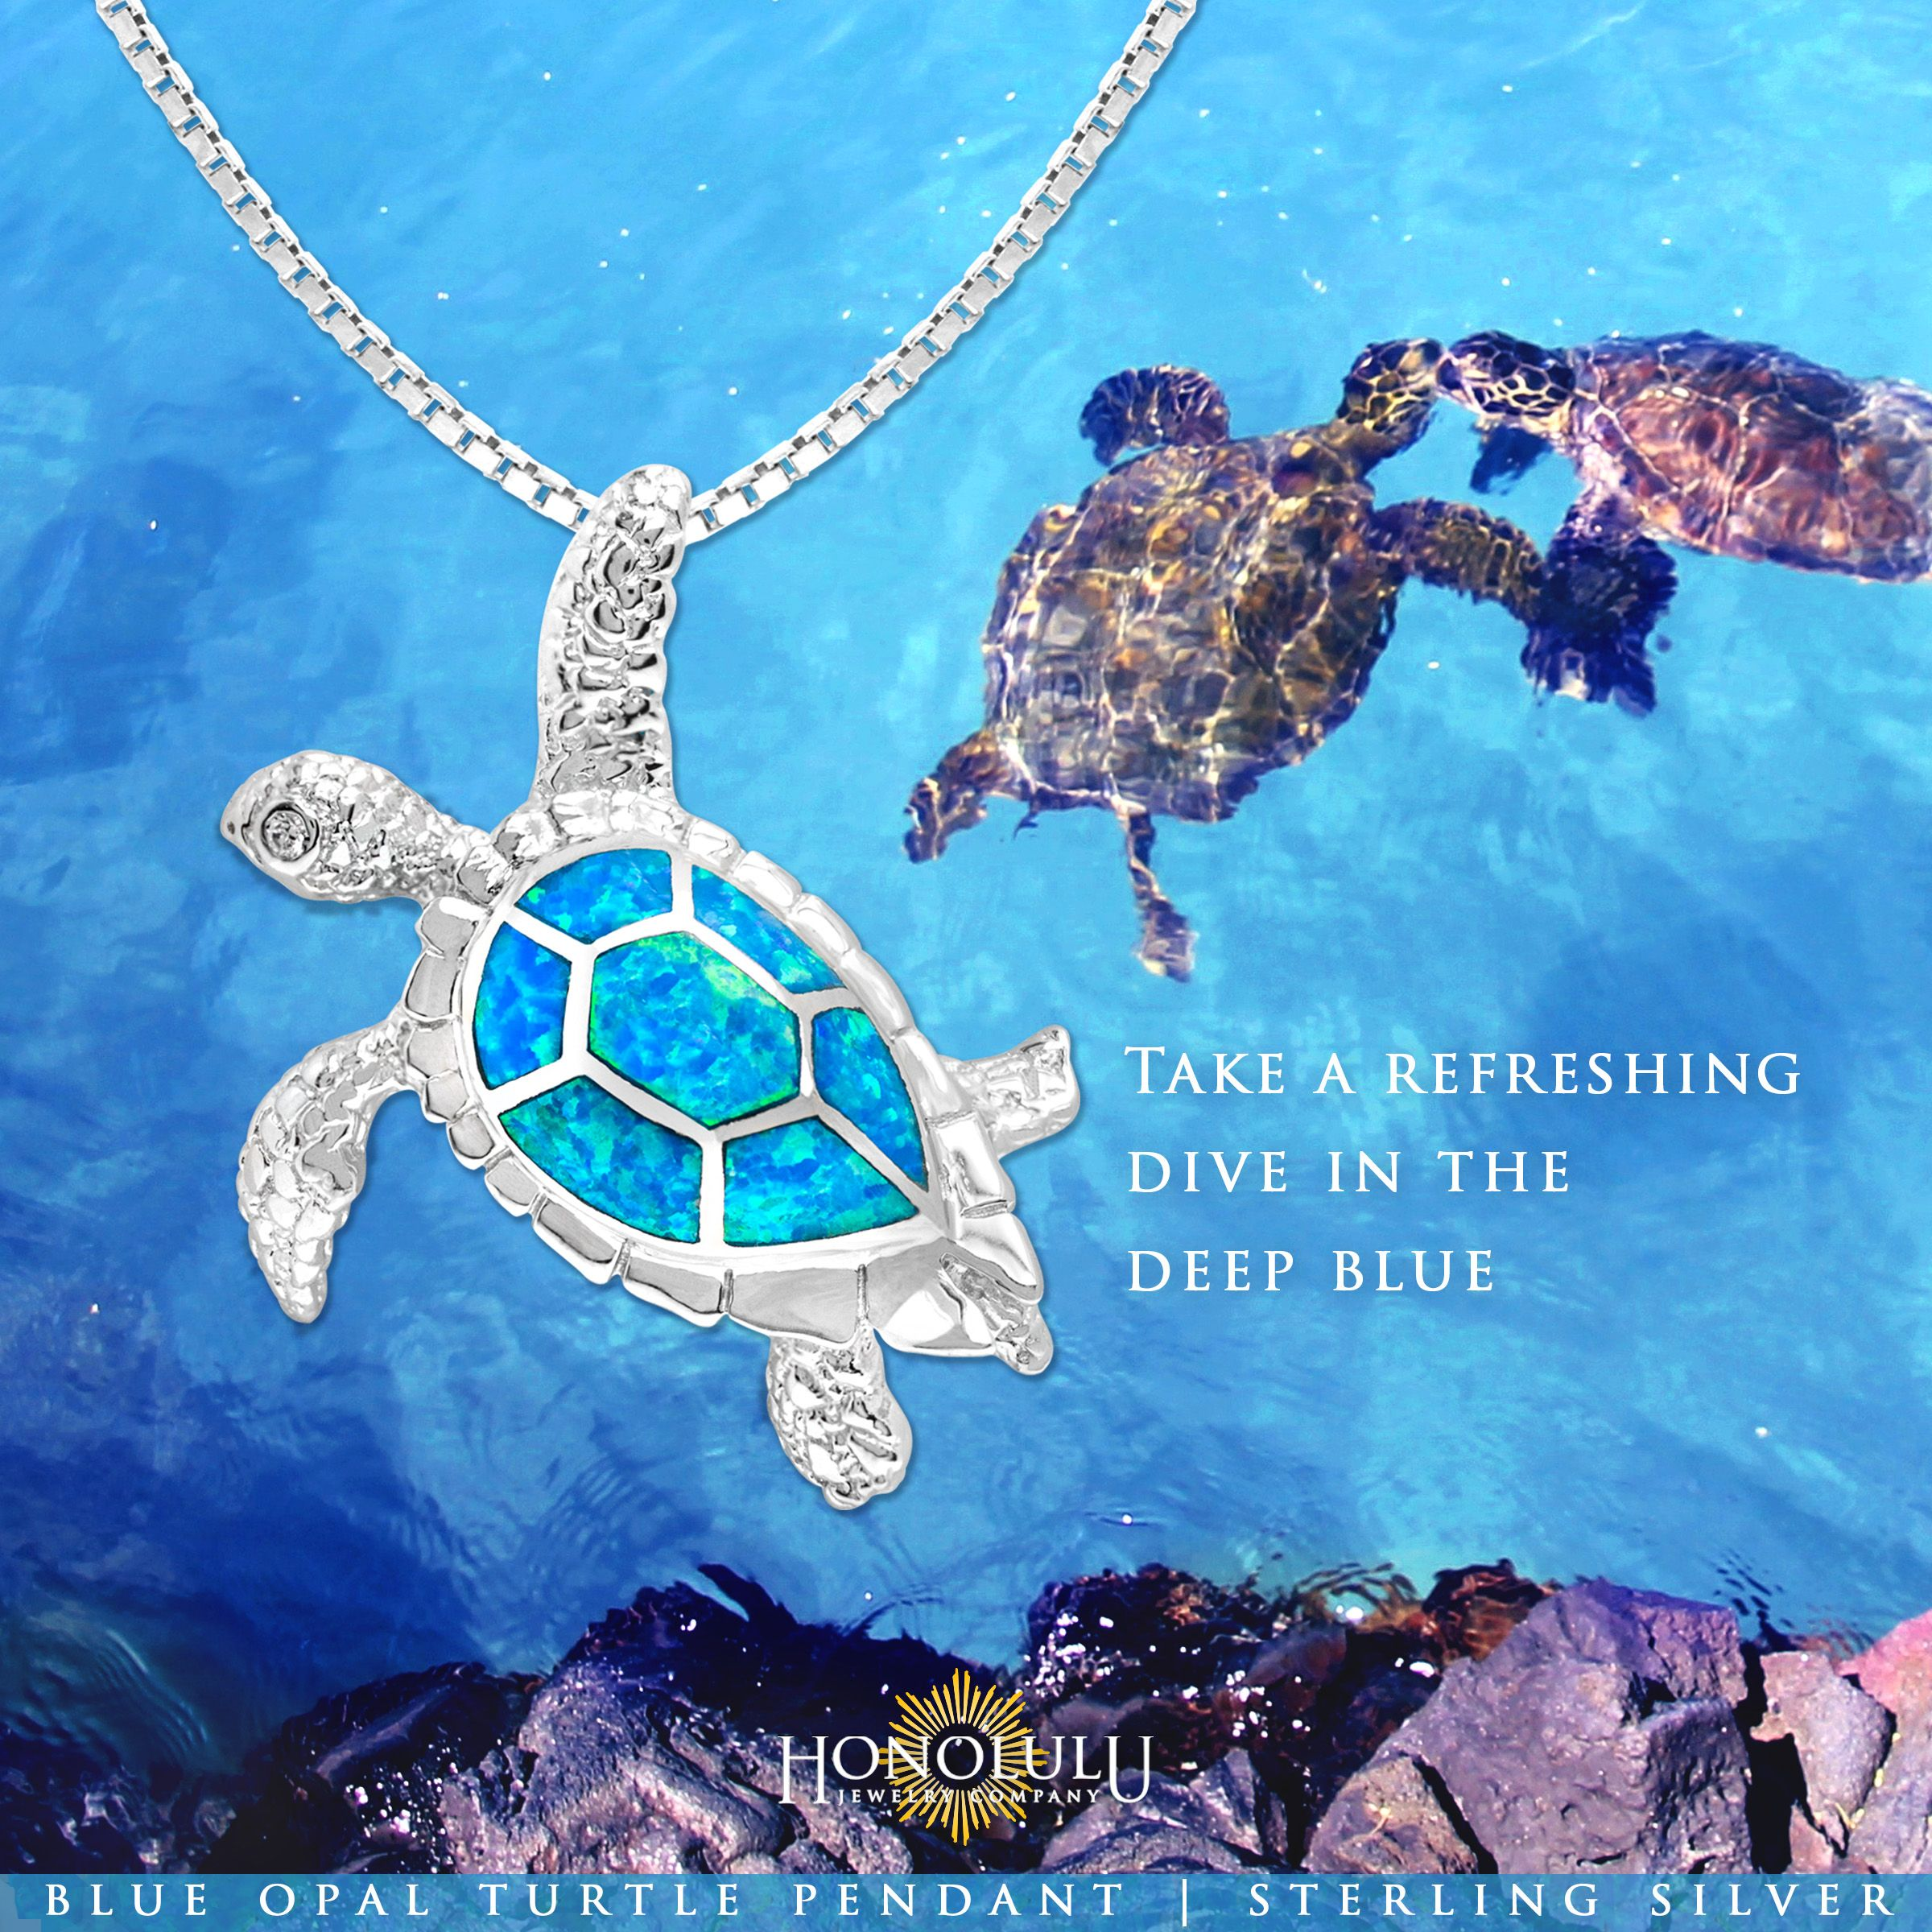 Large sterling silver sea turtle pendant with blue opal inlay large sterling silver sea turtle pendant with blue opal inlay shell contains sparkling cubic zirconia aloadofball Image collections